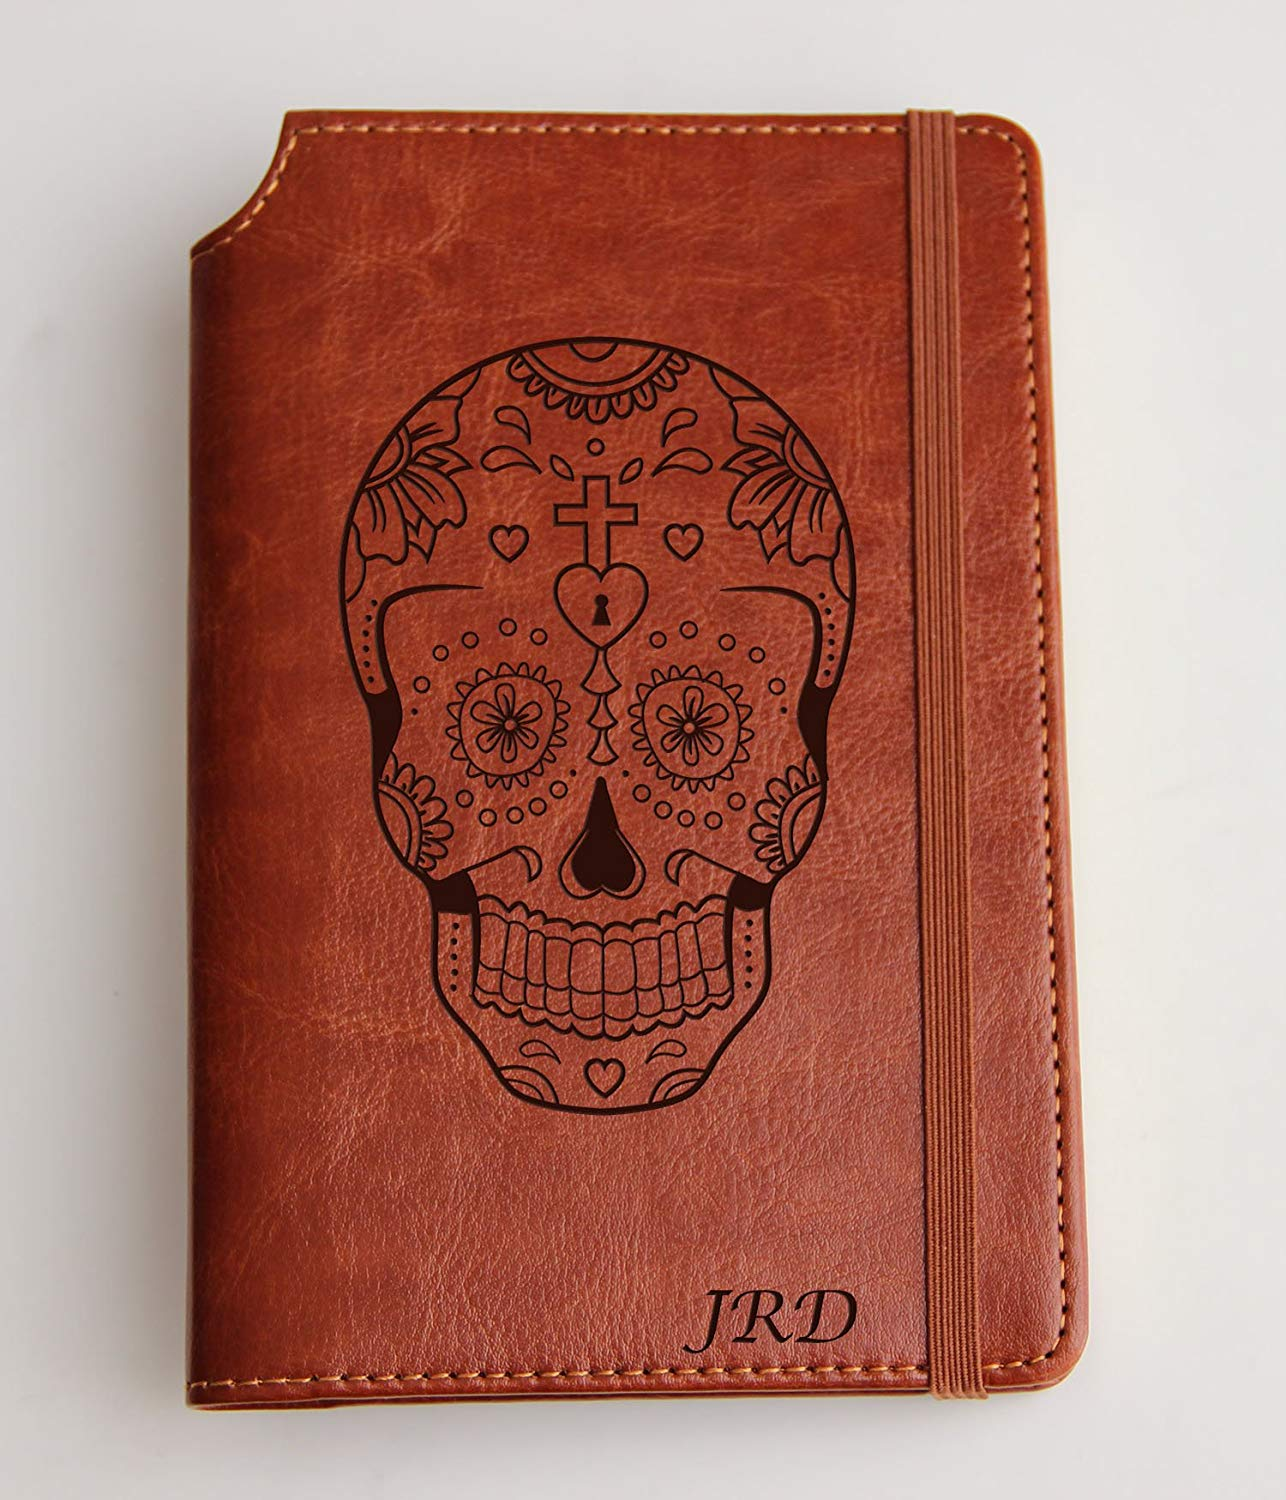 Customizable laser engraved Decorative Skull Illustration Journal Customizable engraved Journal leather bound, strip with the same color to keep it closed